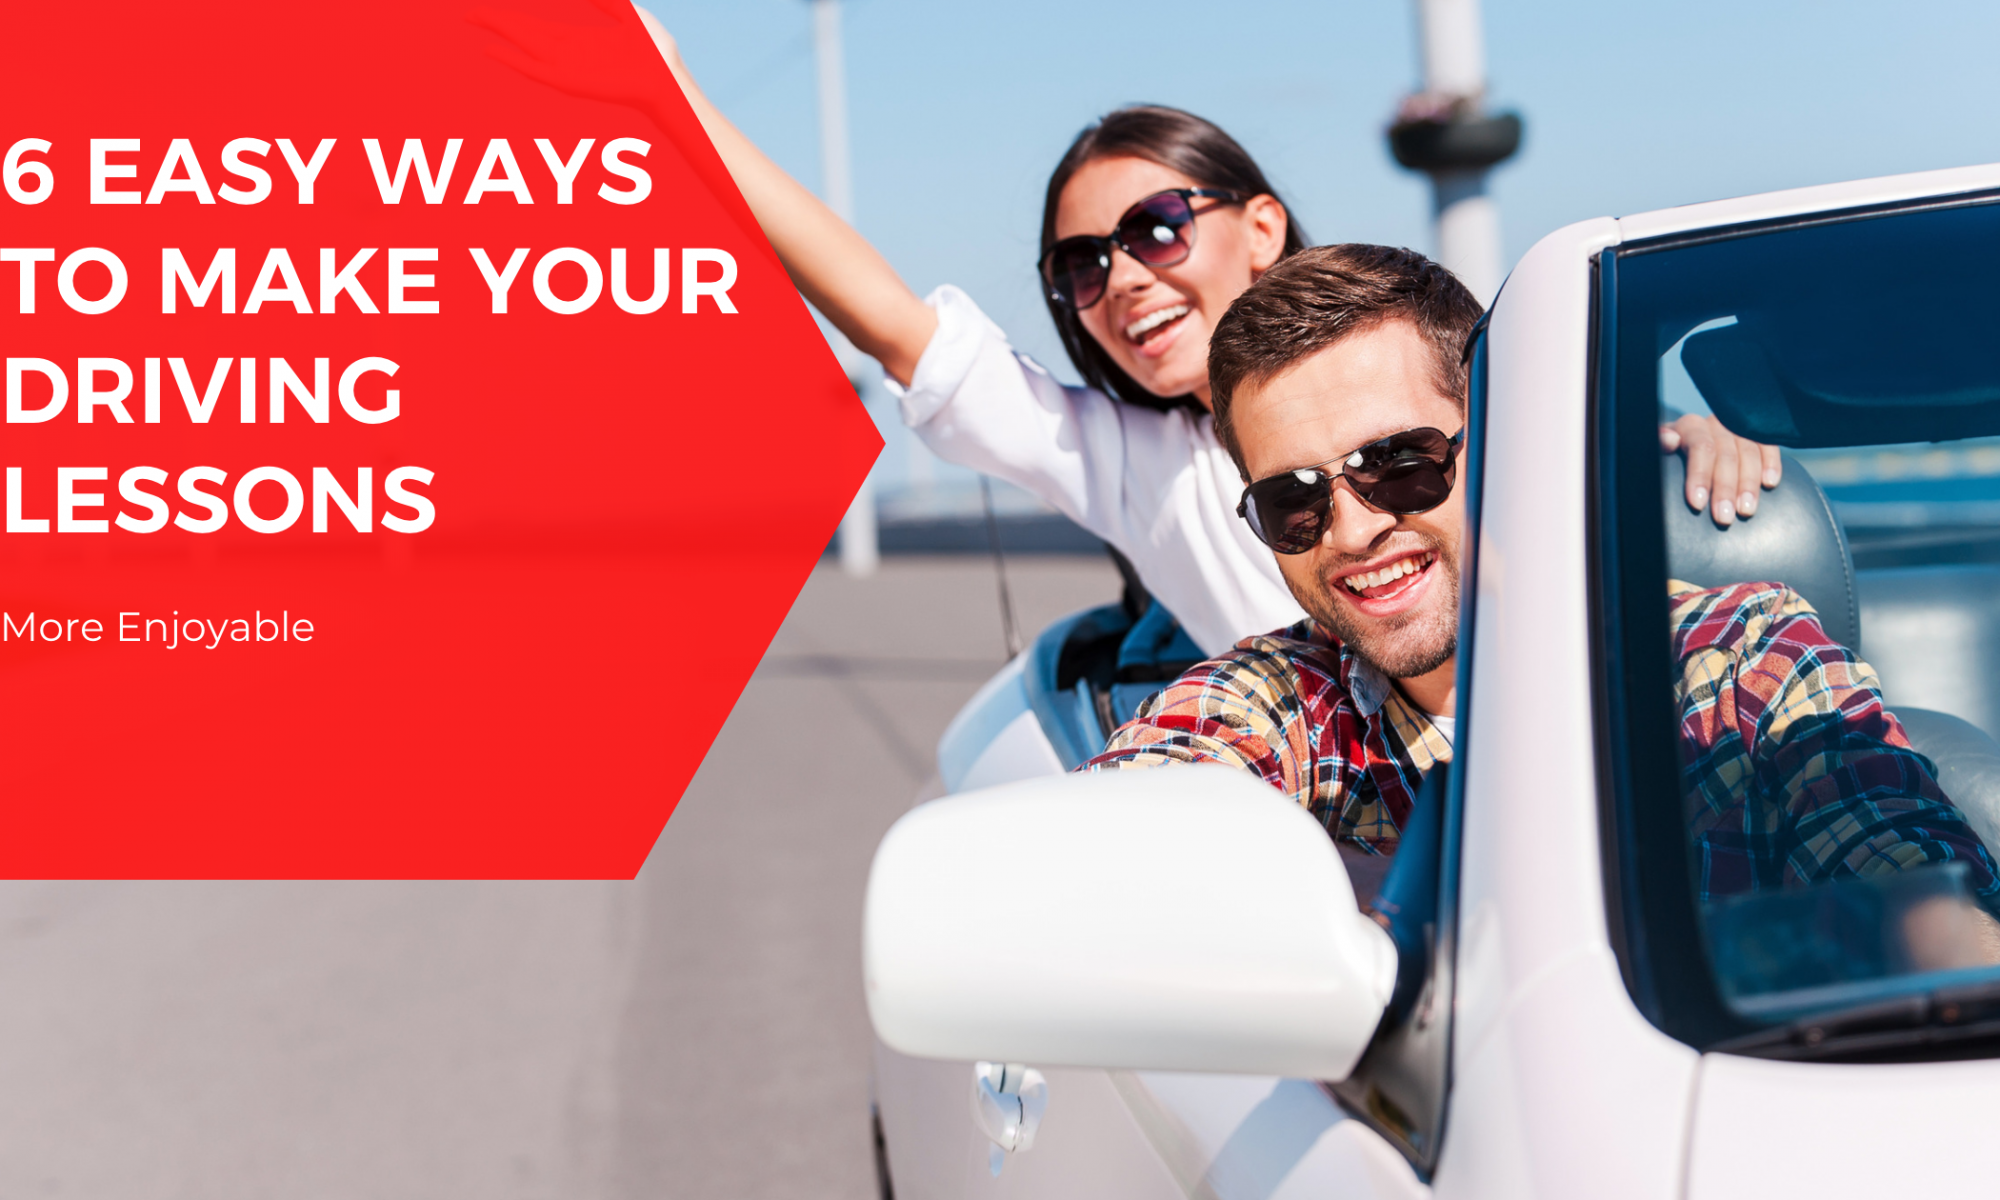 6 EASY WAYS TO MAKE YOUR DRIVING LESSONS MORE ENJOYABLE